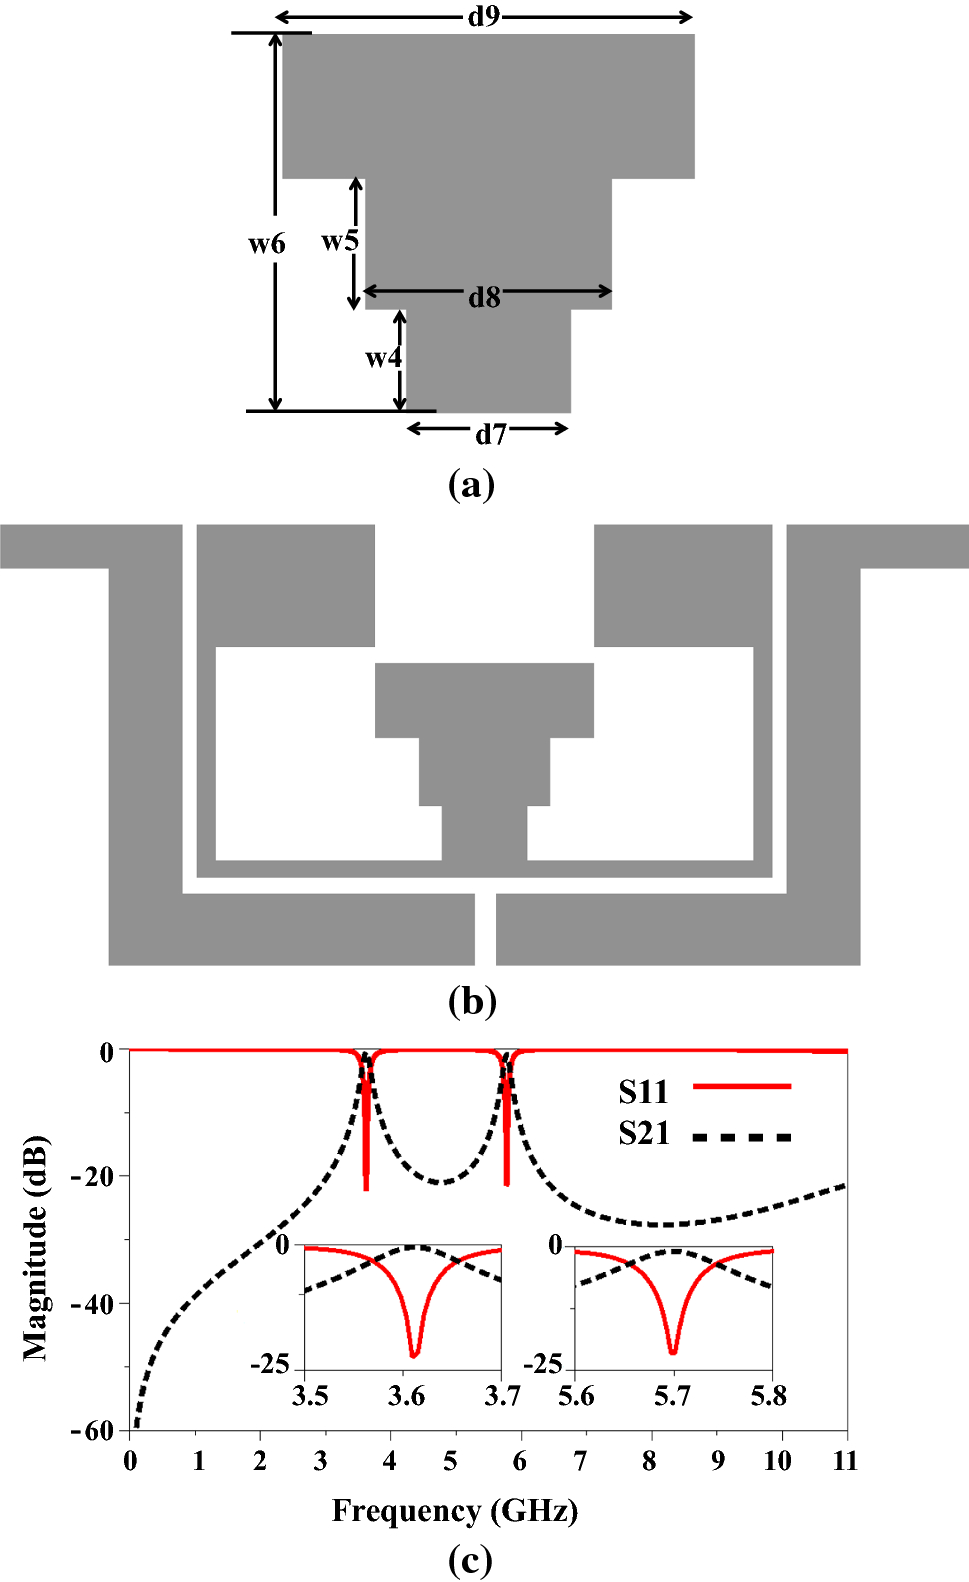 Miniaturized Microstrip Dual Band Bandpass Filter With Wide Upper Double Tuned Signalprocessing Circuit Diagram Open Image In New Window